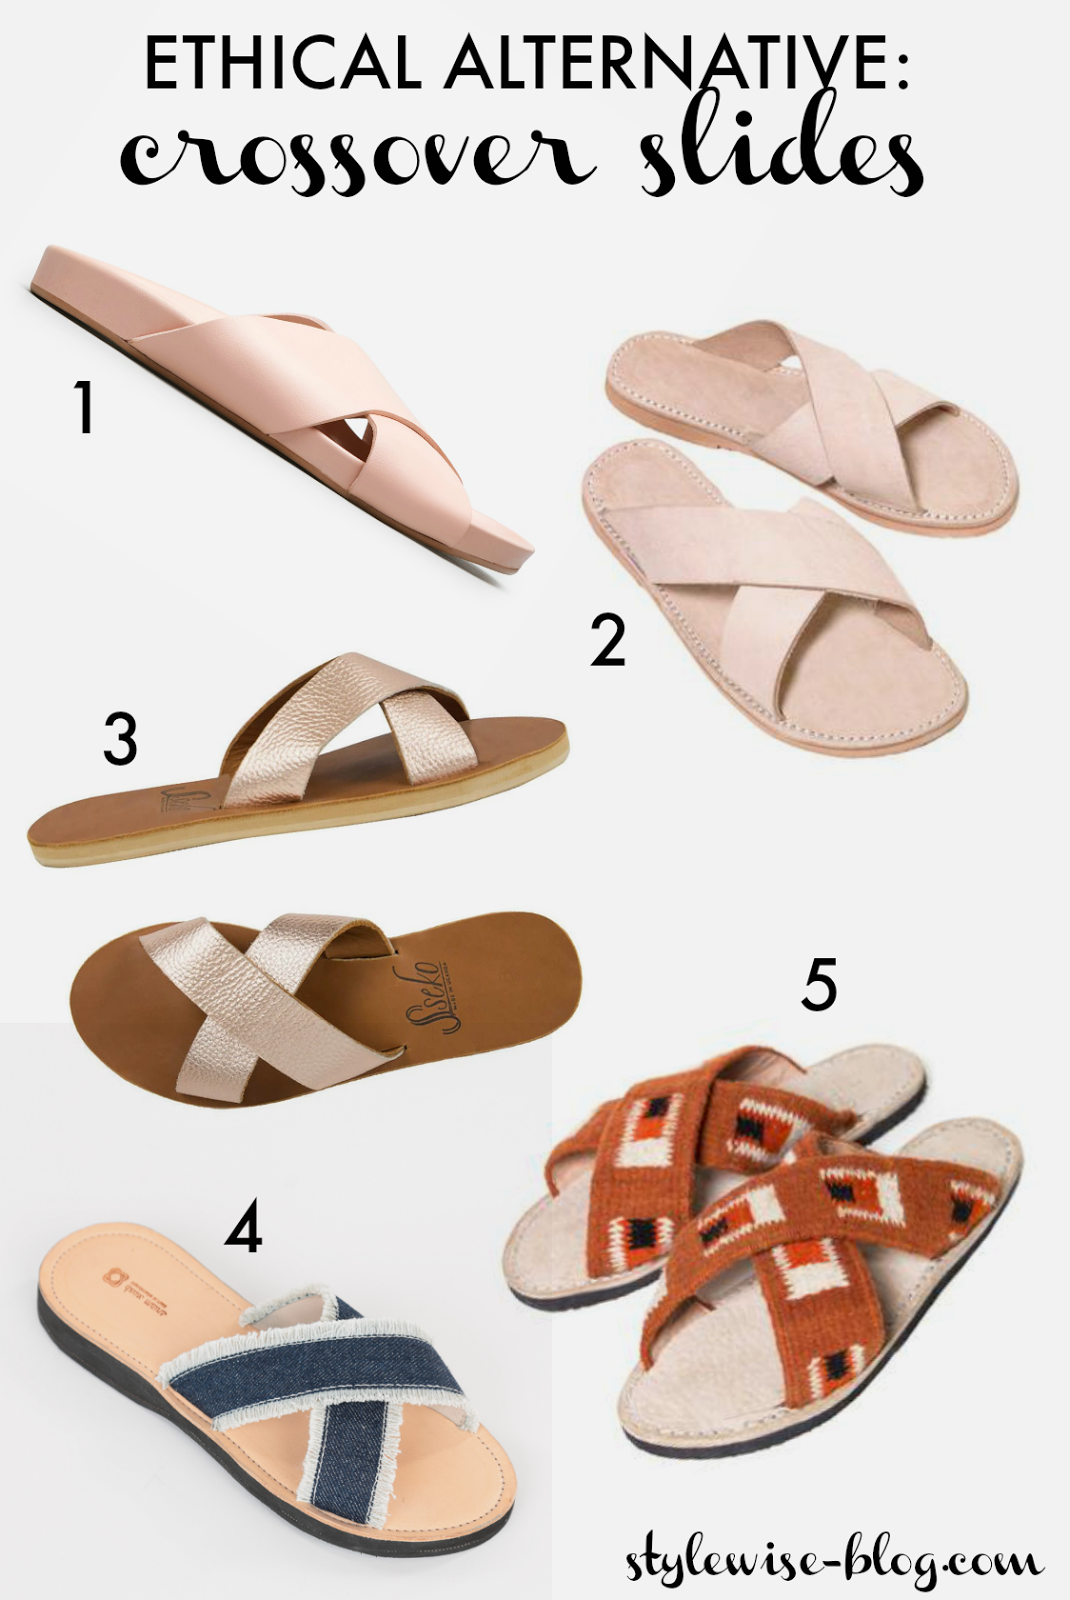 Ethical crossover slides sandals